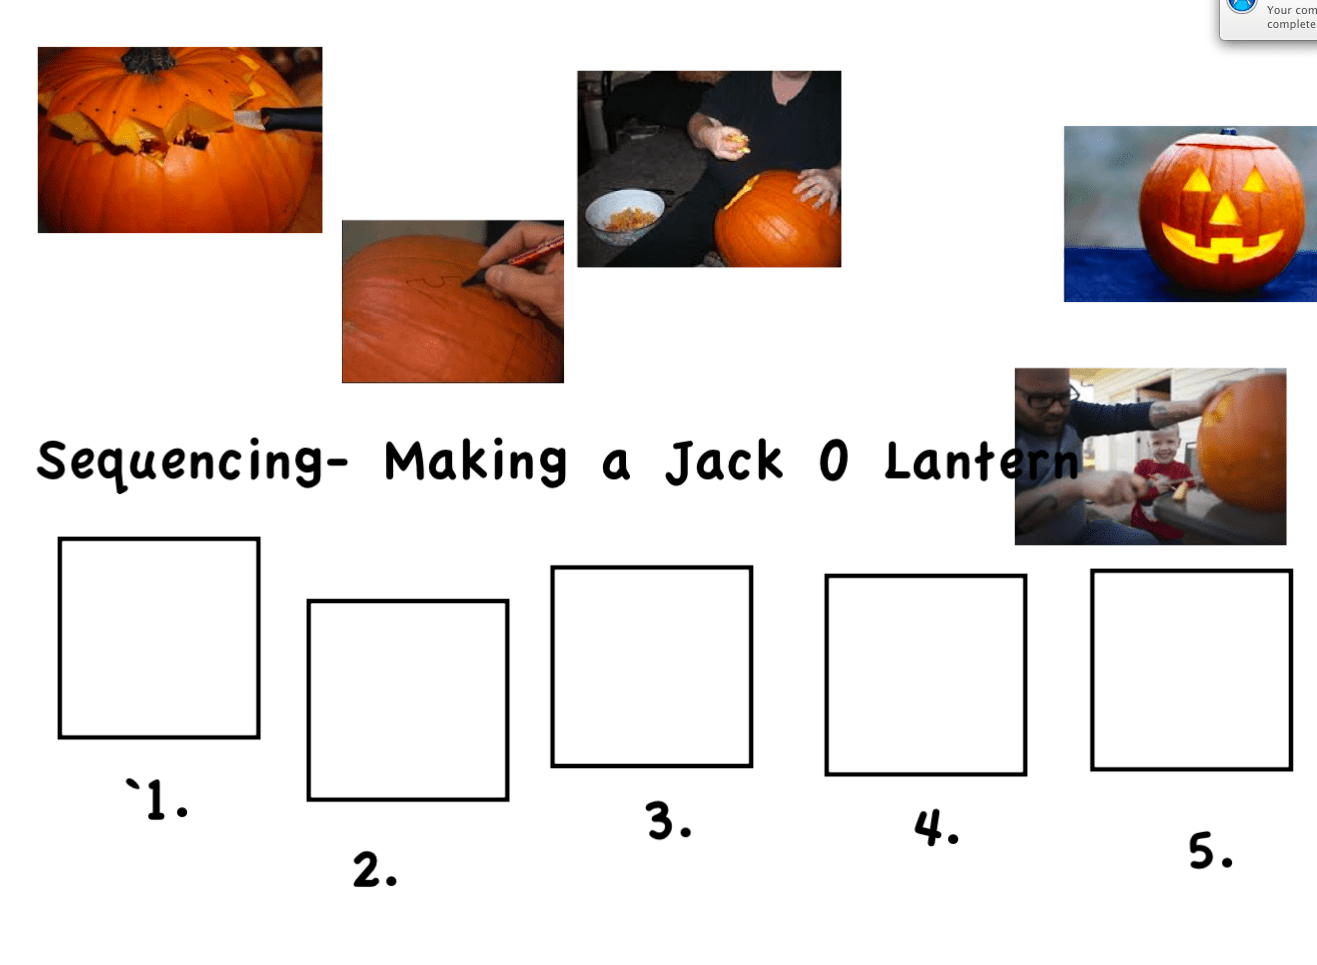 Sequencing Carving A Jack O Lantern Smart Notebook Smart Board Ideas